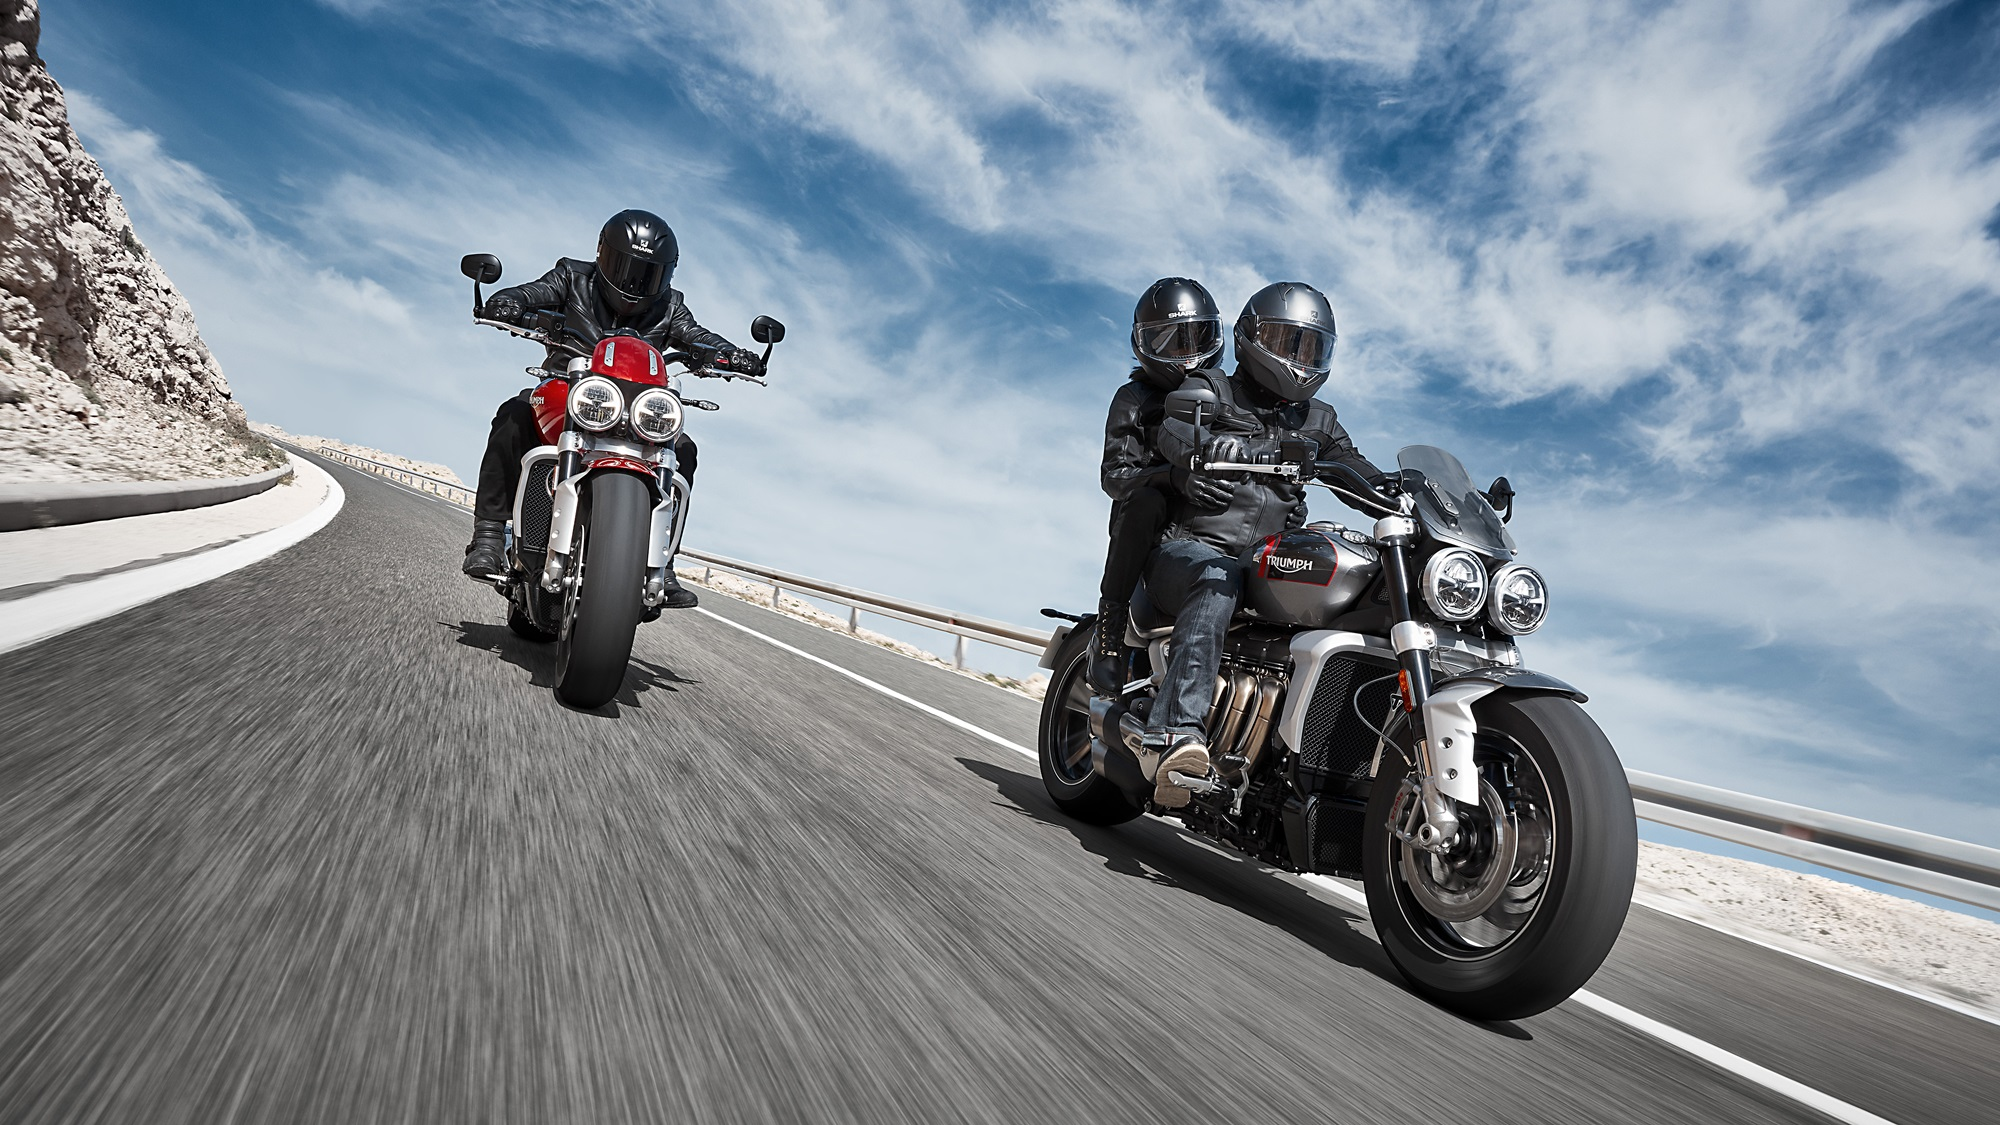 2019 Triumph Rocket 3 R And Gt Hd Wallpaper Iamabiker